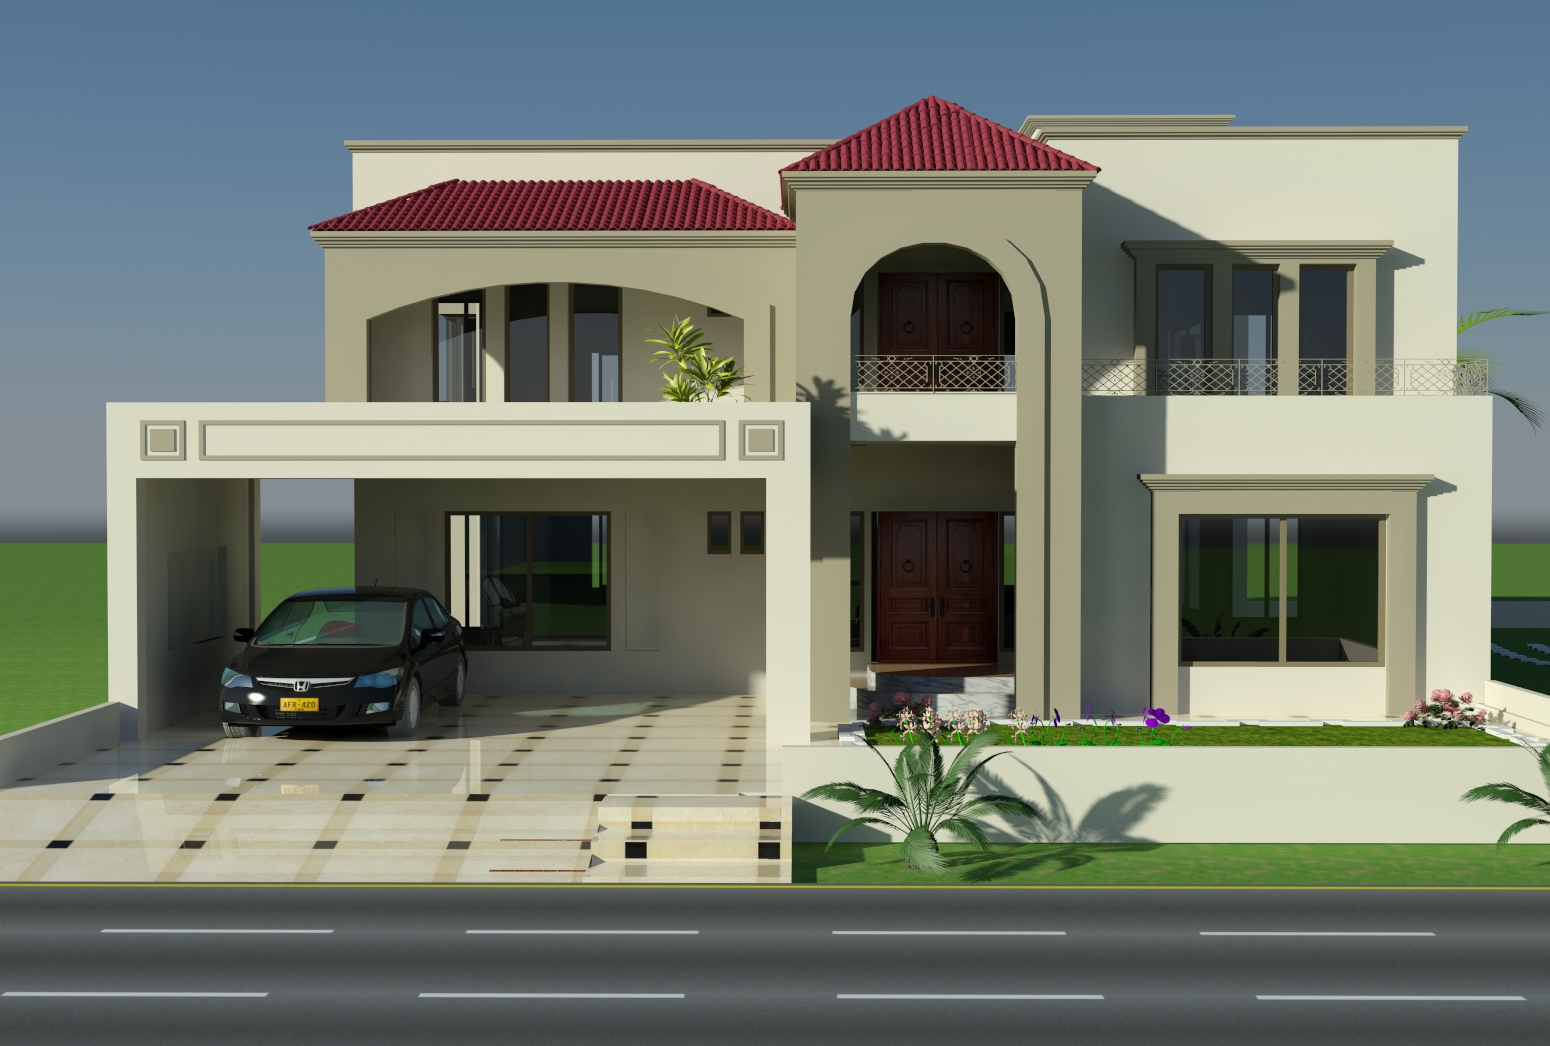 Kanal Plot House Design Europen style in Bahria Town, Lahore, Pakistan